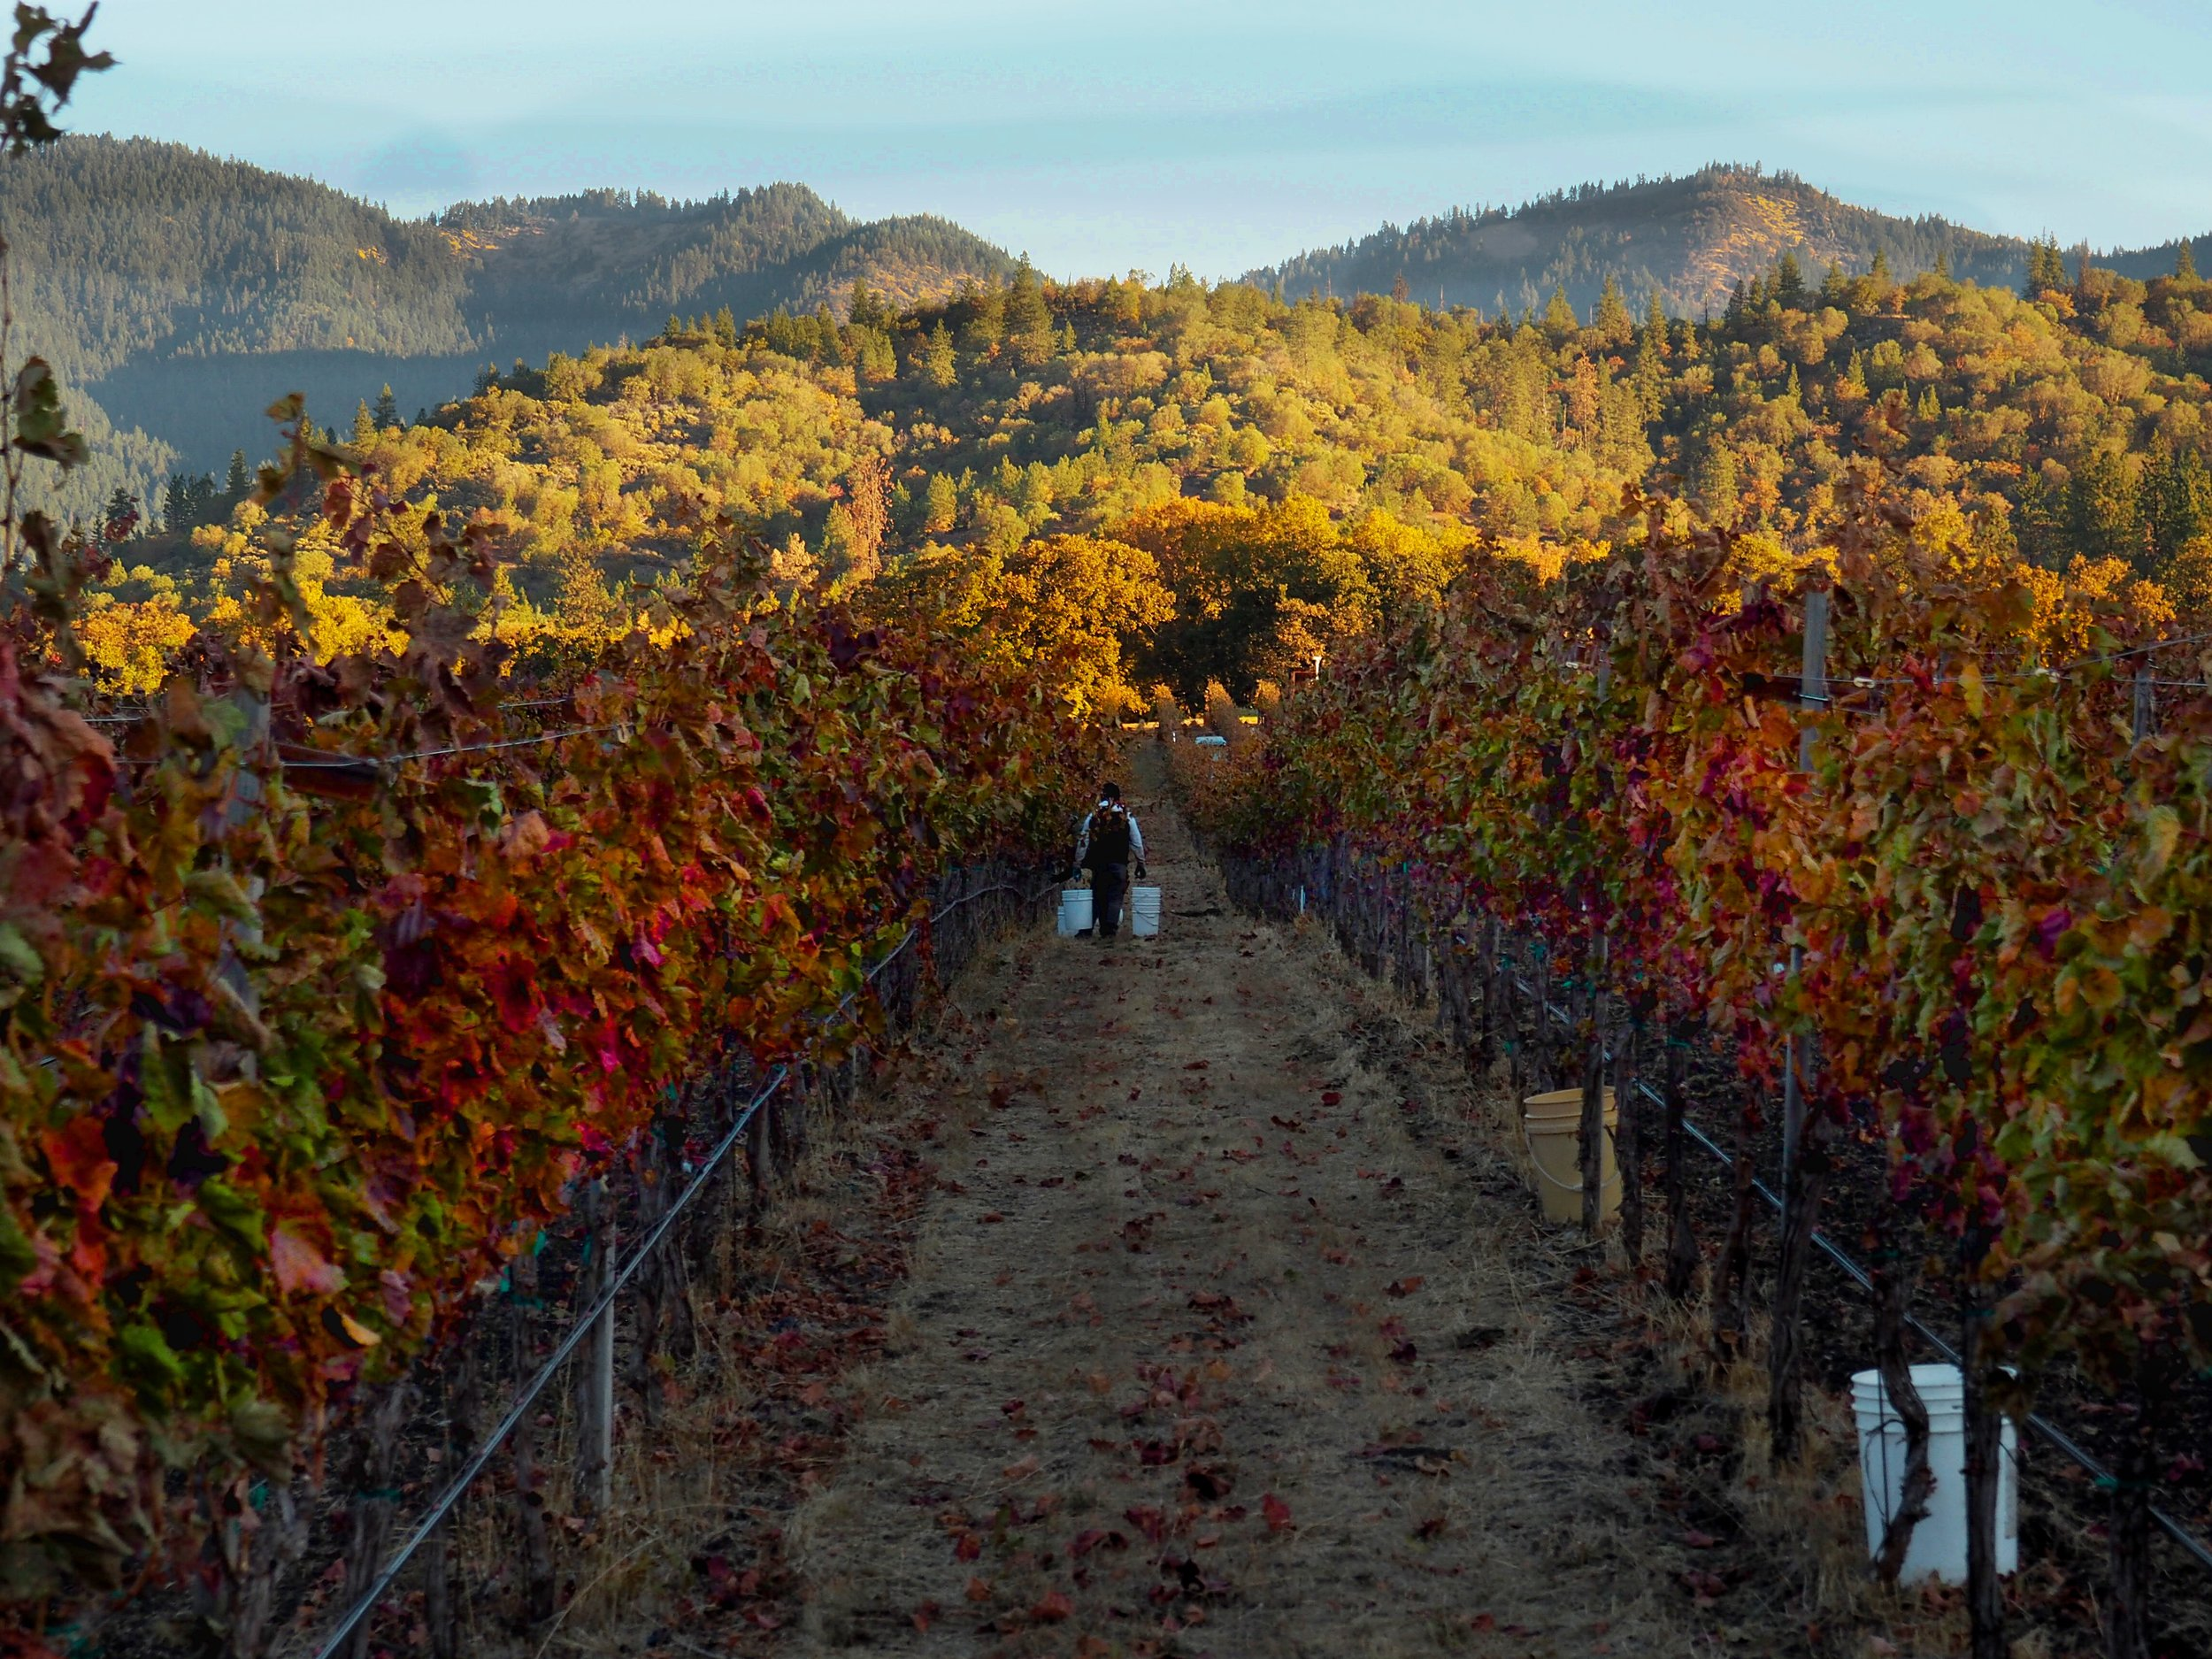 Picking starts at dawn with the vines still in the shade of the Siskiyou Mountains, which are already brightly illuminated.